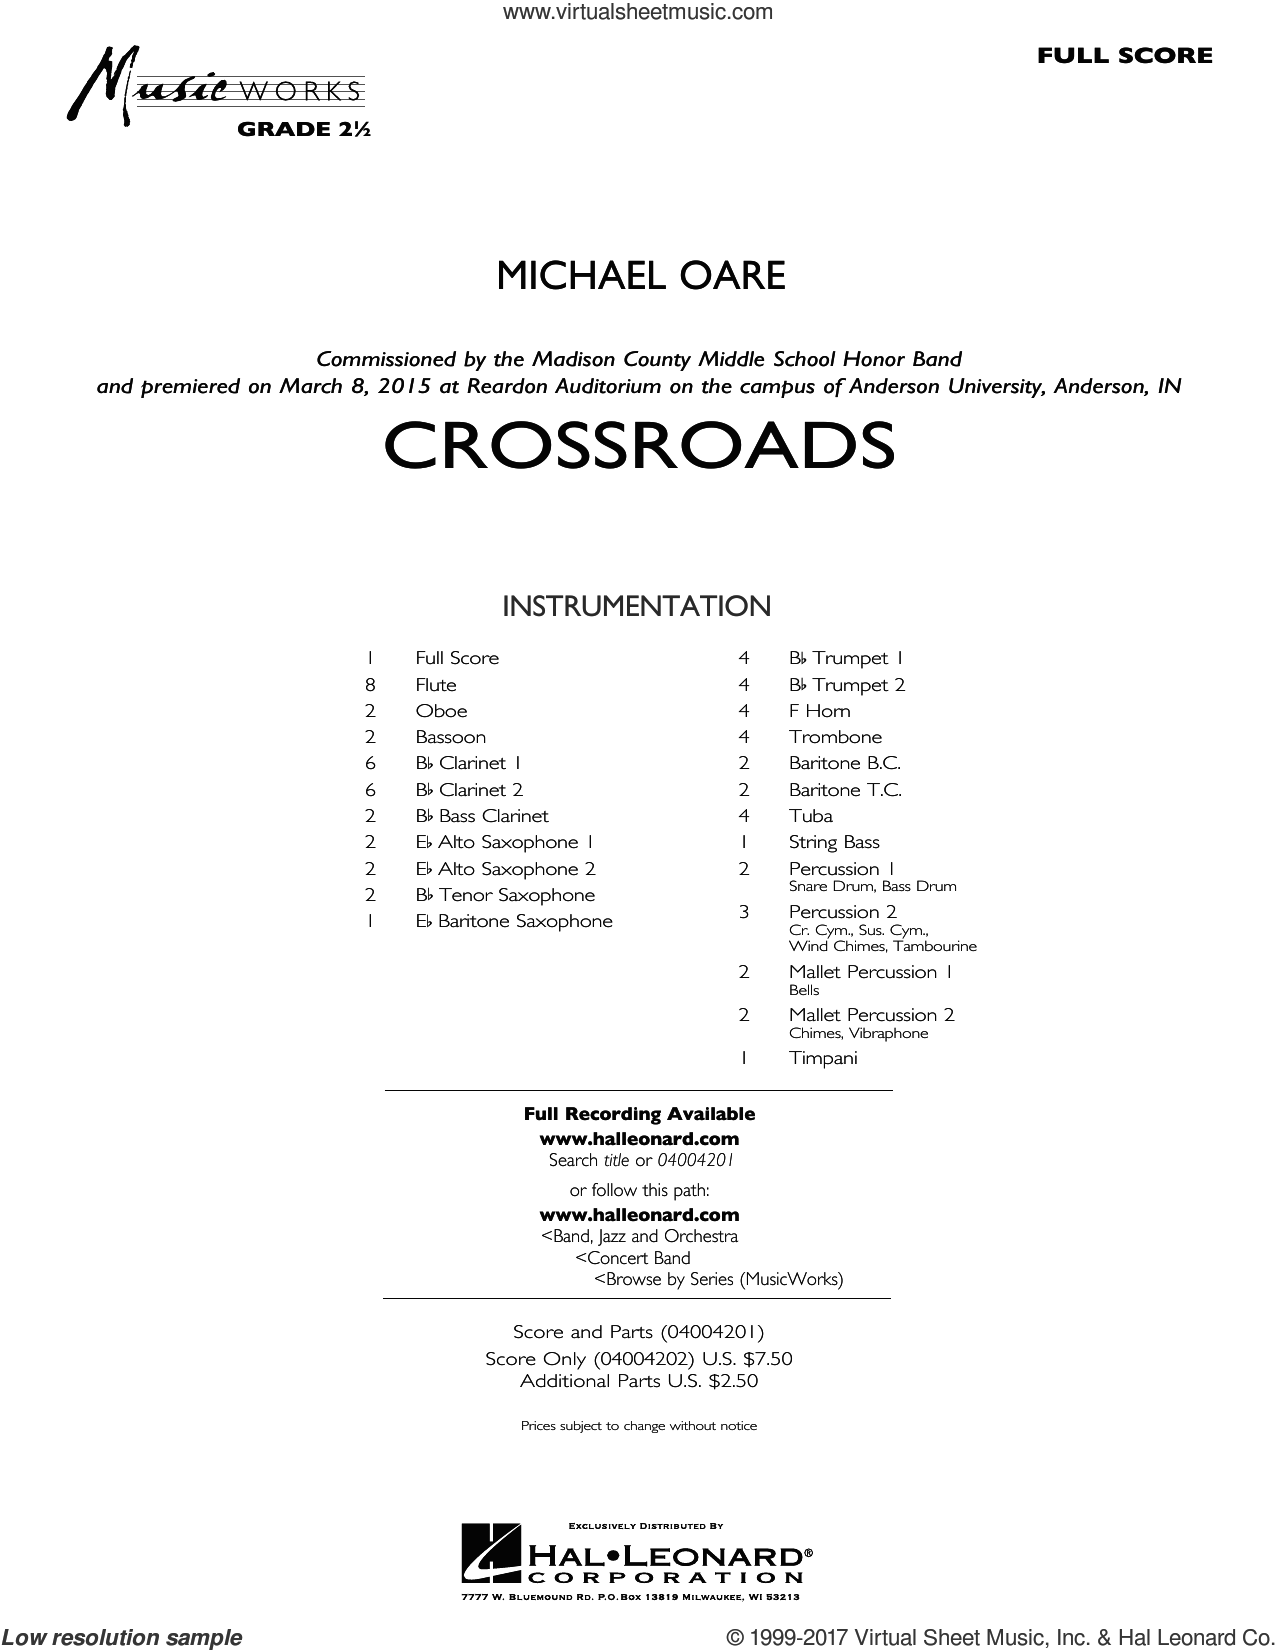 Oare - Crossroads sheet music (complete collection) for concert band